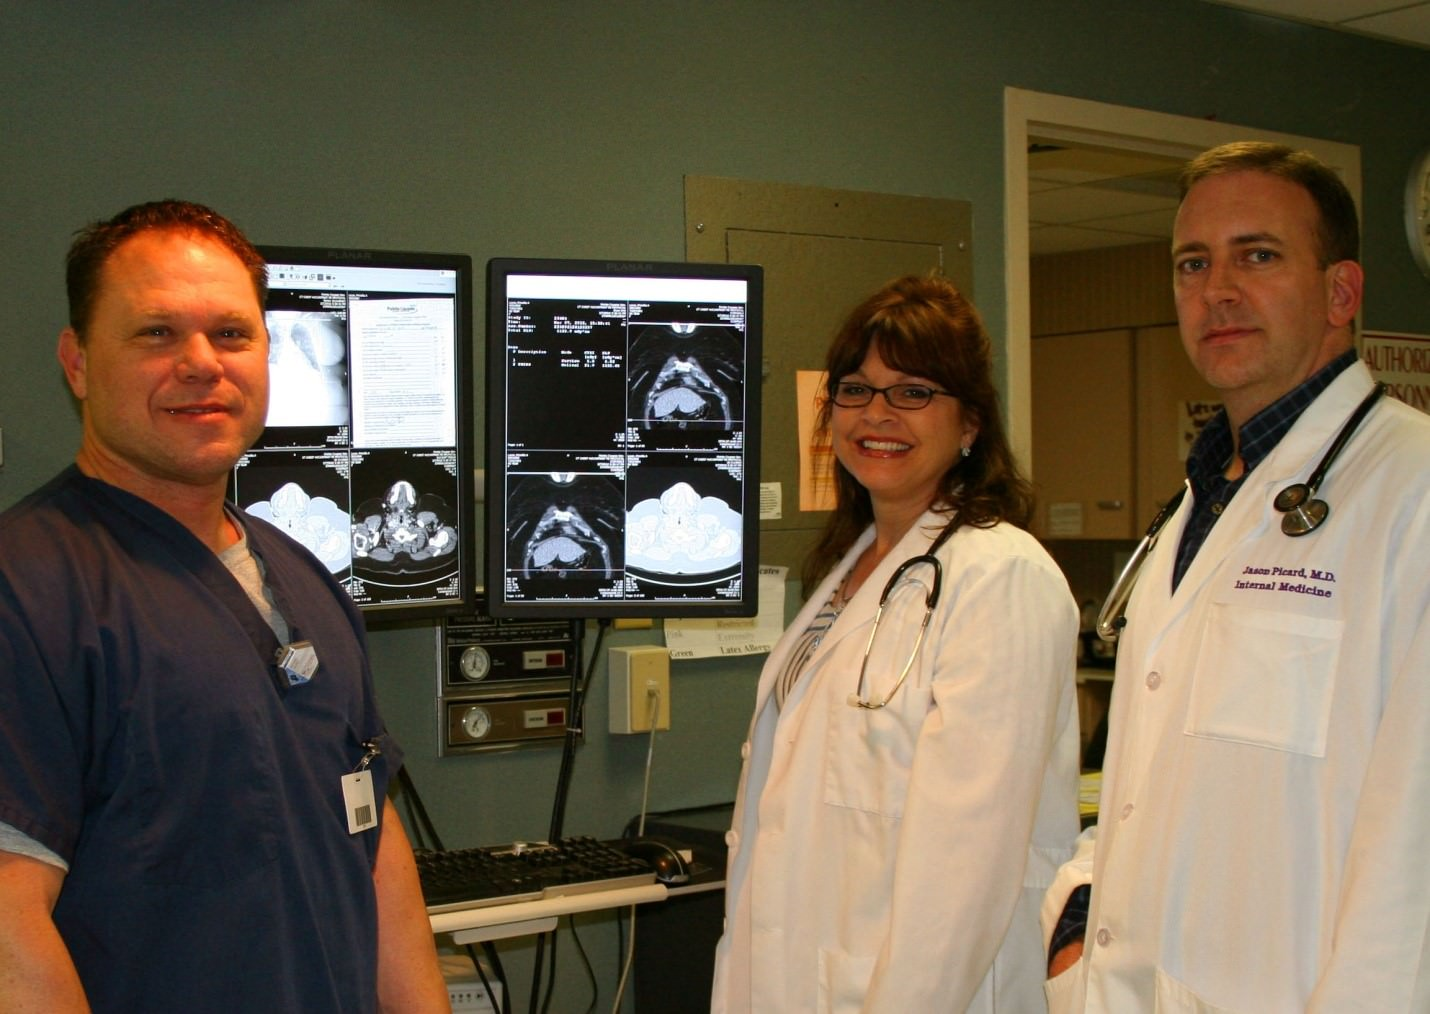 Mike Causey, RT(R), Michelle Carley, MD, ER Physician, and Jason Picard, MD, FACP, view radiologic images via (PACS) Picture Archiving Communication System.